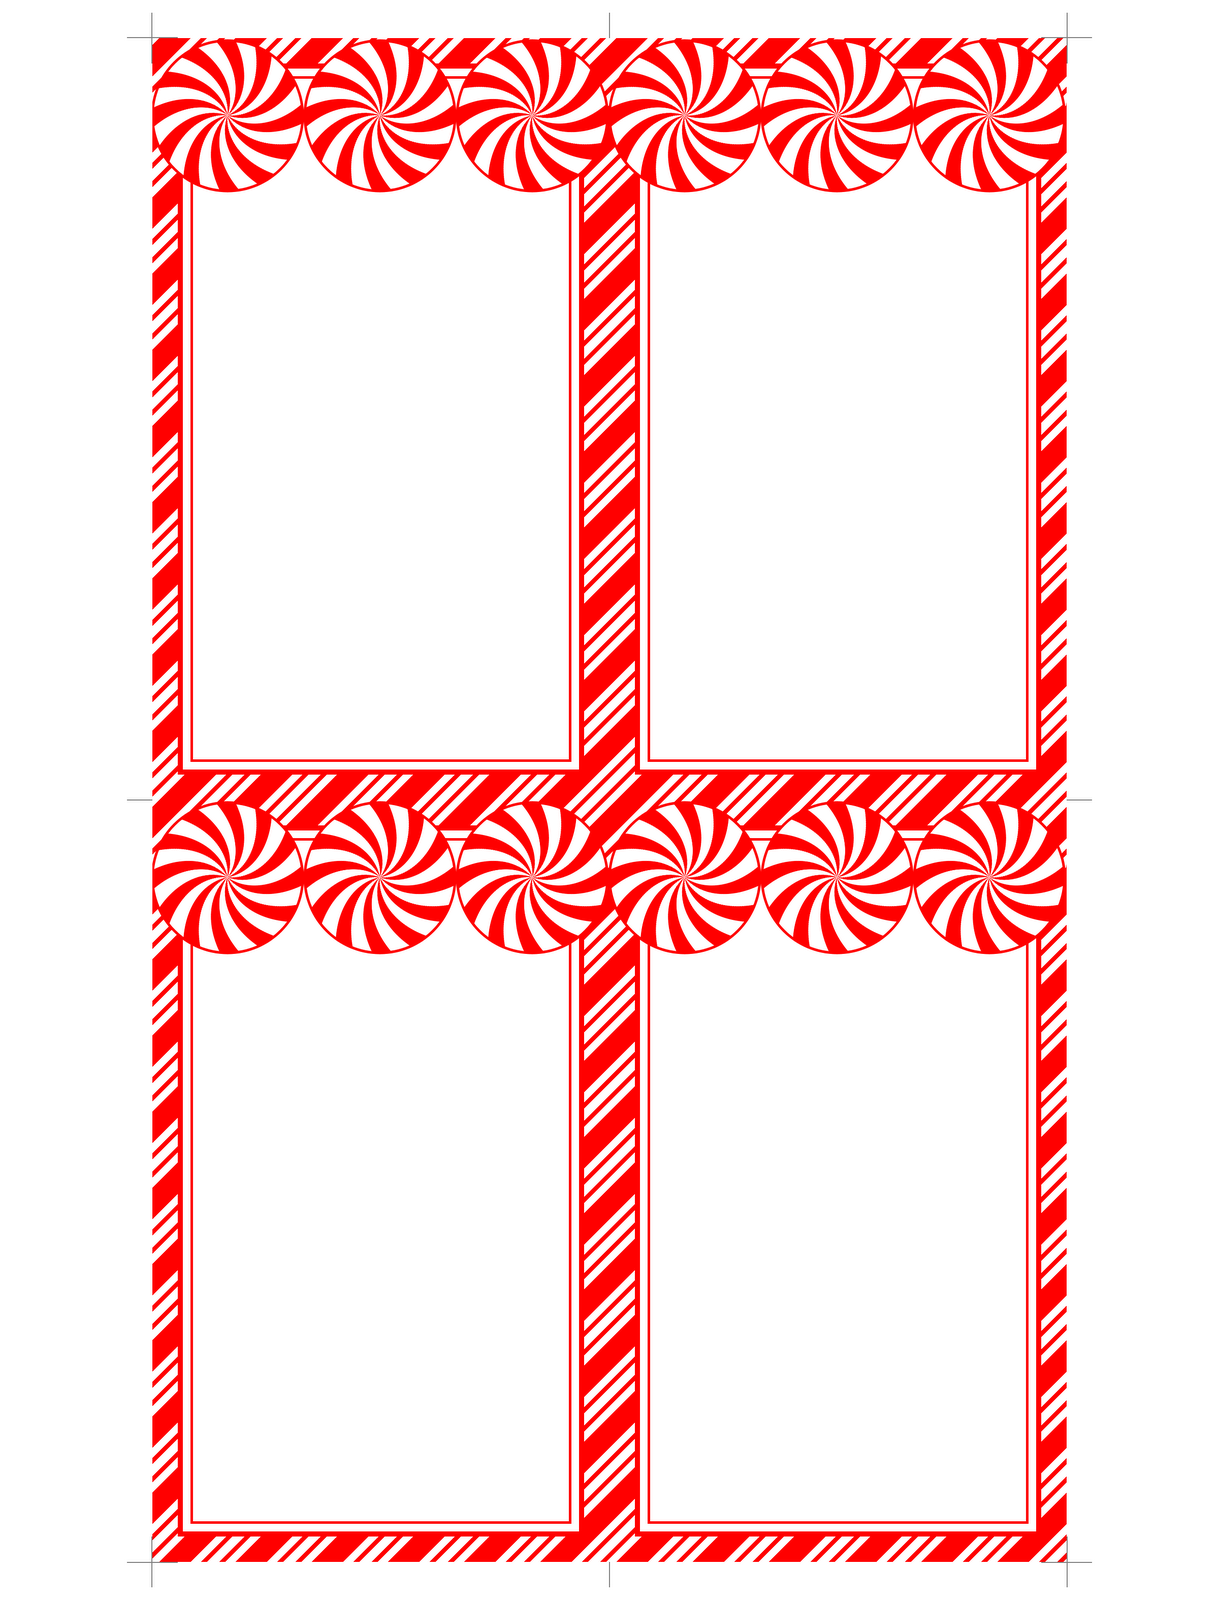 Modest image intended for free printable blank gift tags